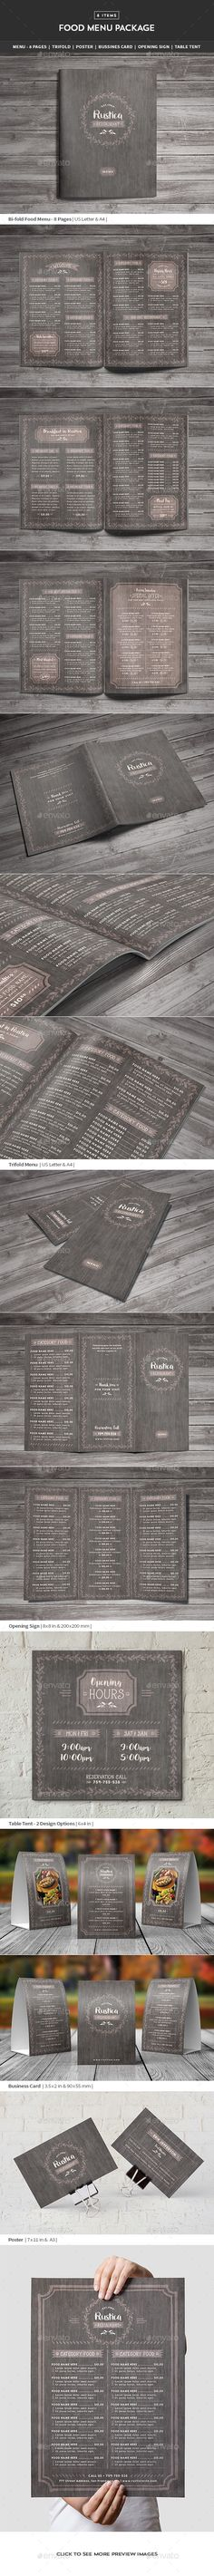 Restaurant Food Menu Package — Photoshop PSD #poster #food • Available here → https://graphicriver.net/item/restaurant-food-menu-package/17559752?ref=pxcr